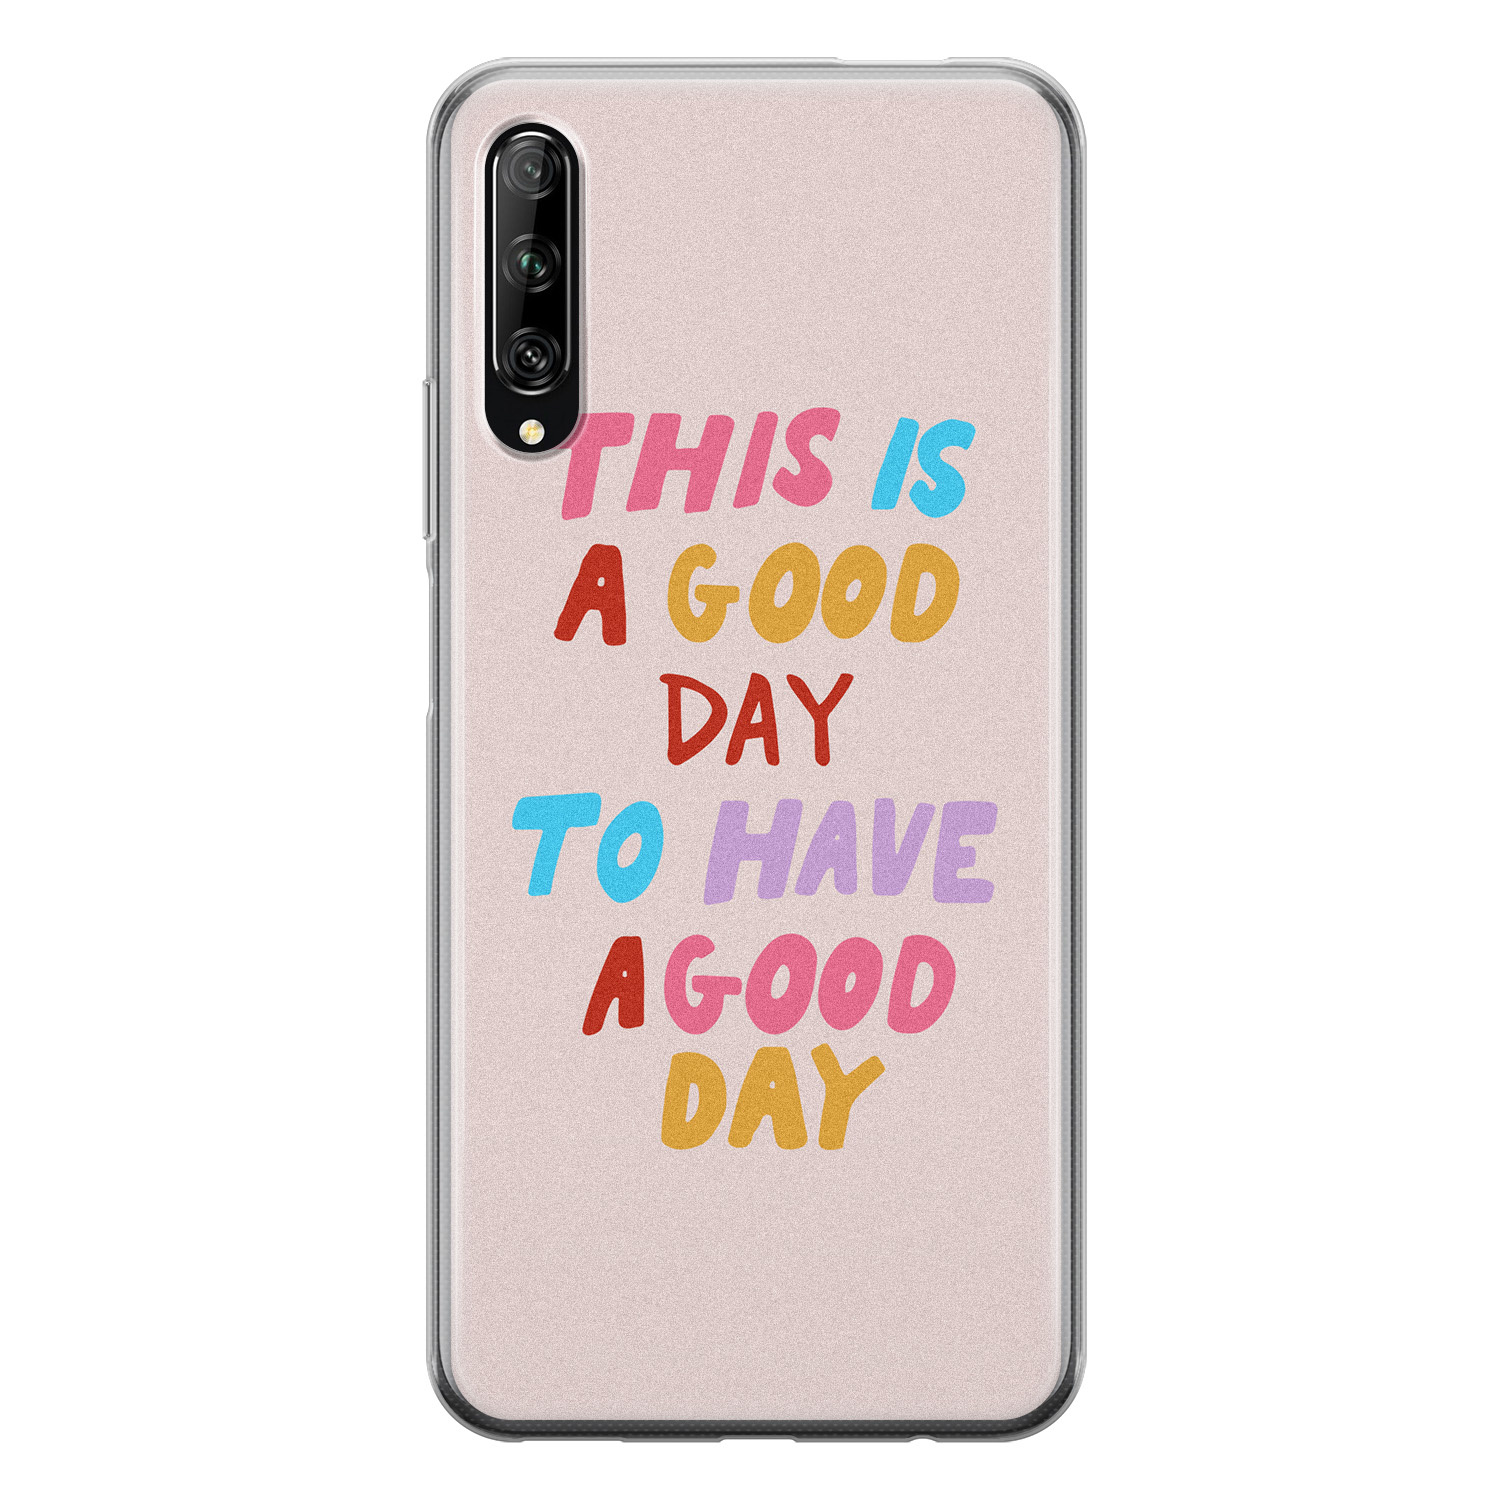 Huawei P Smart Pro siliconen hoesje - This is a good day